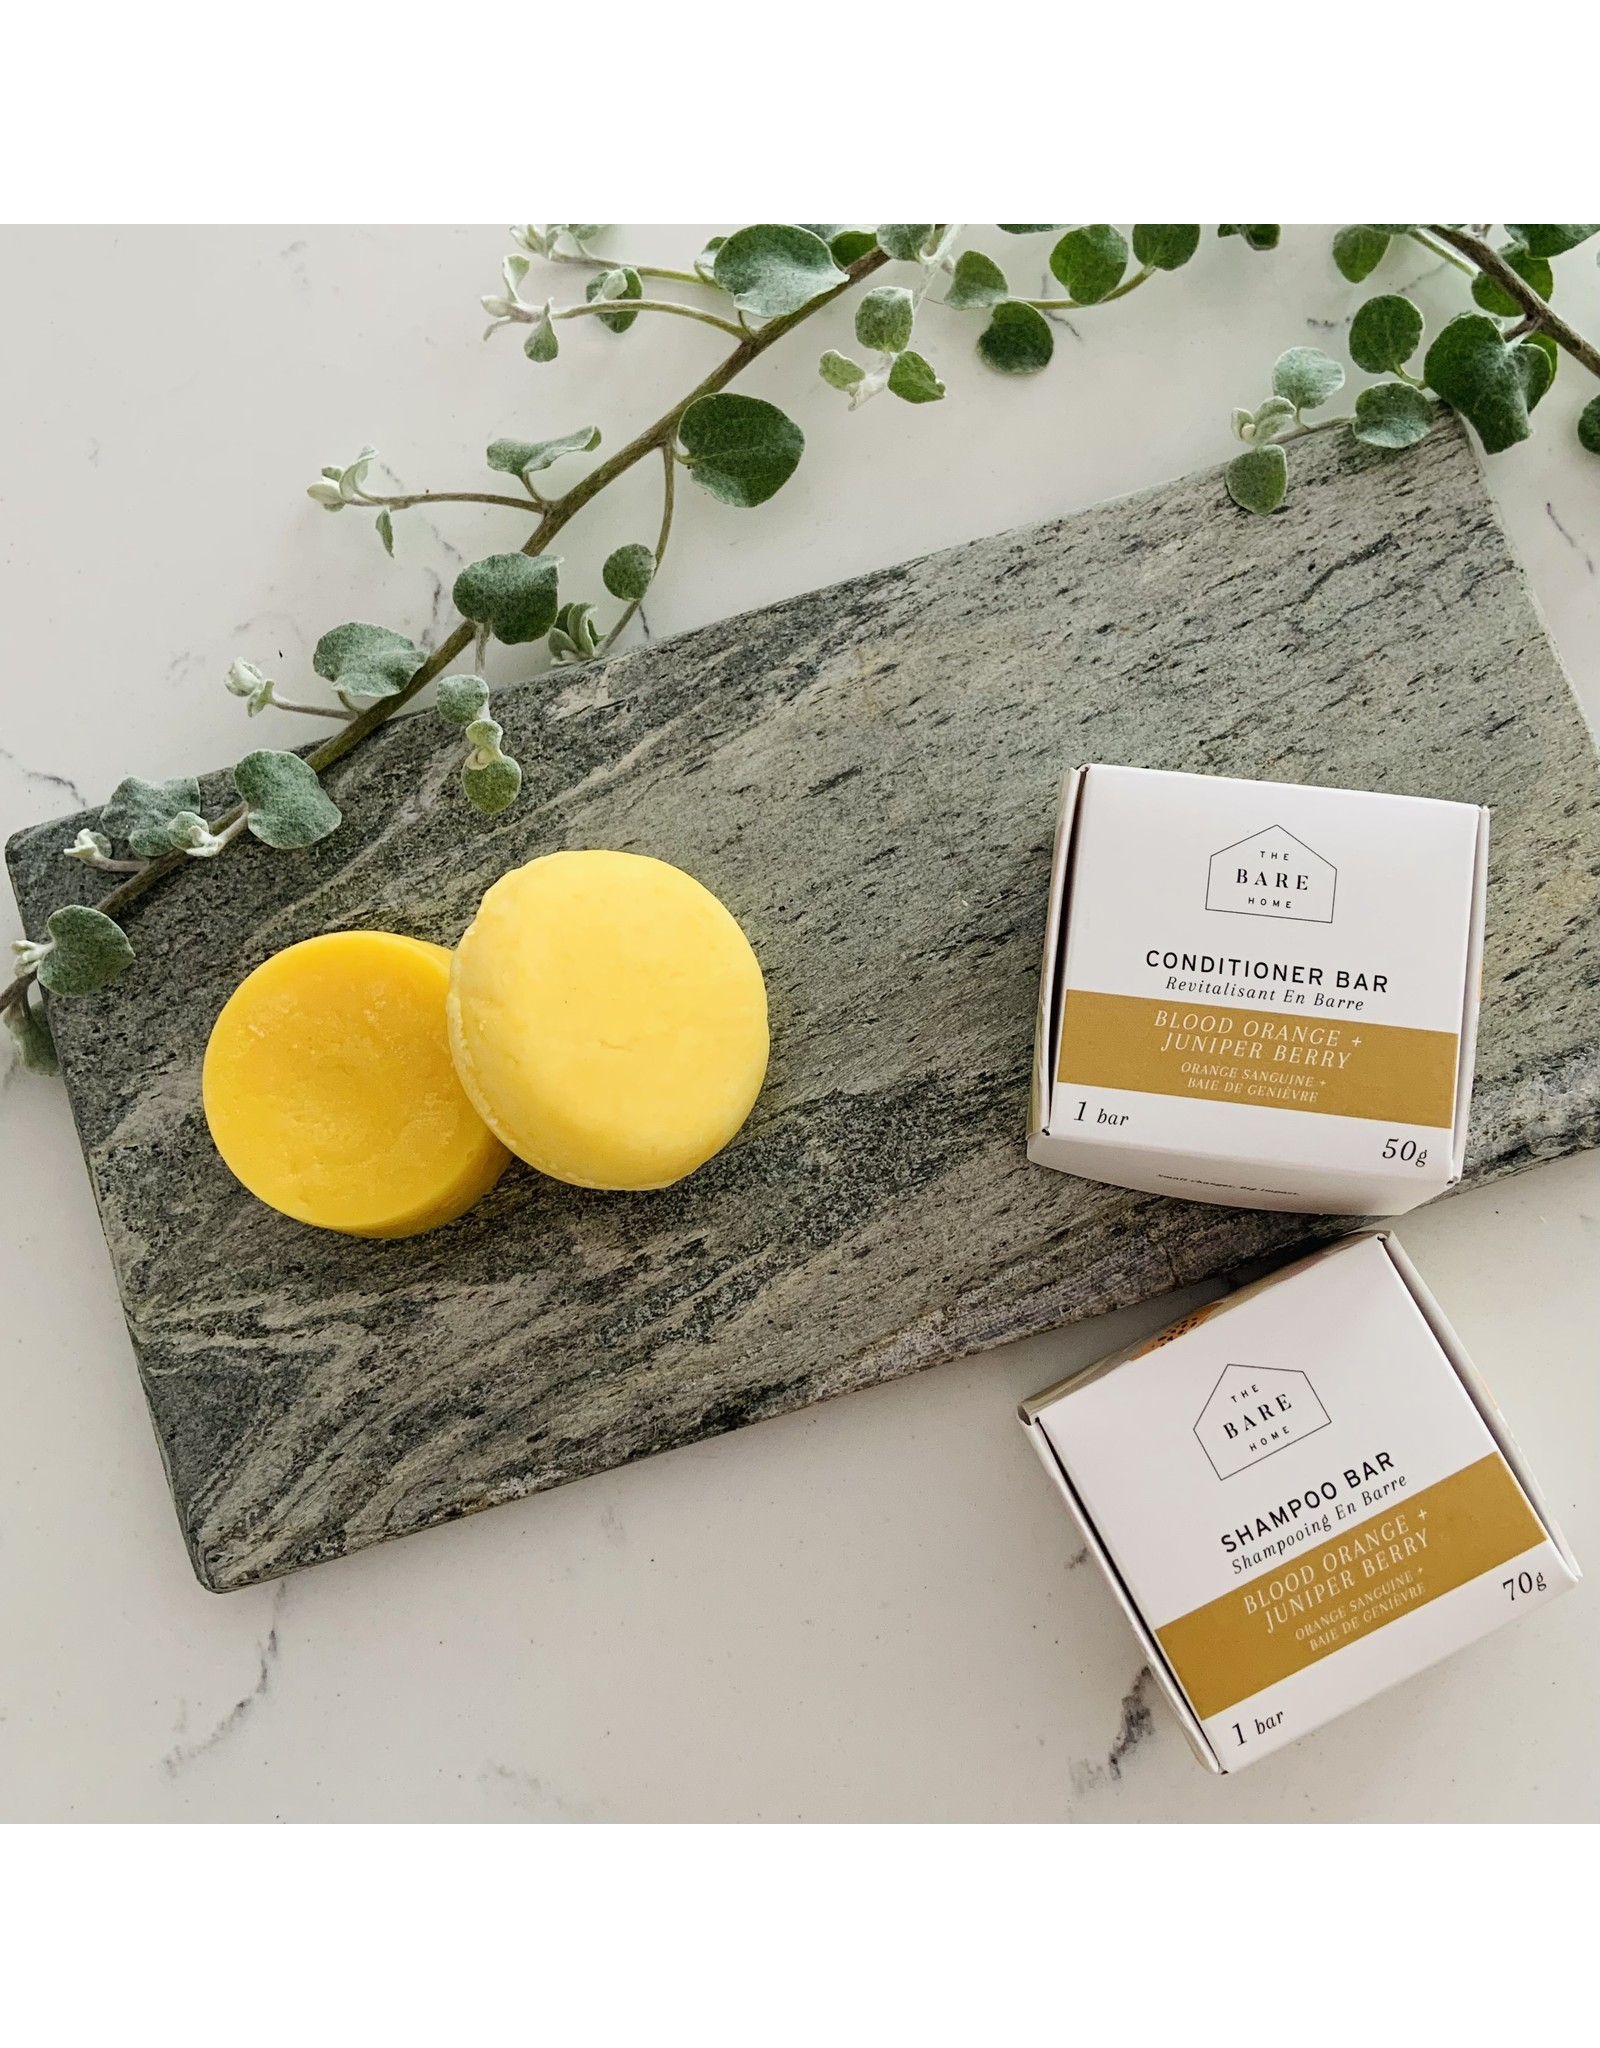 The Bare Home Conditioner Bar by The Bare Home